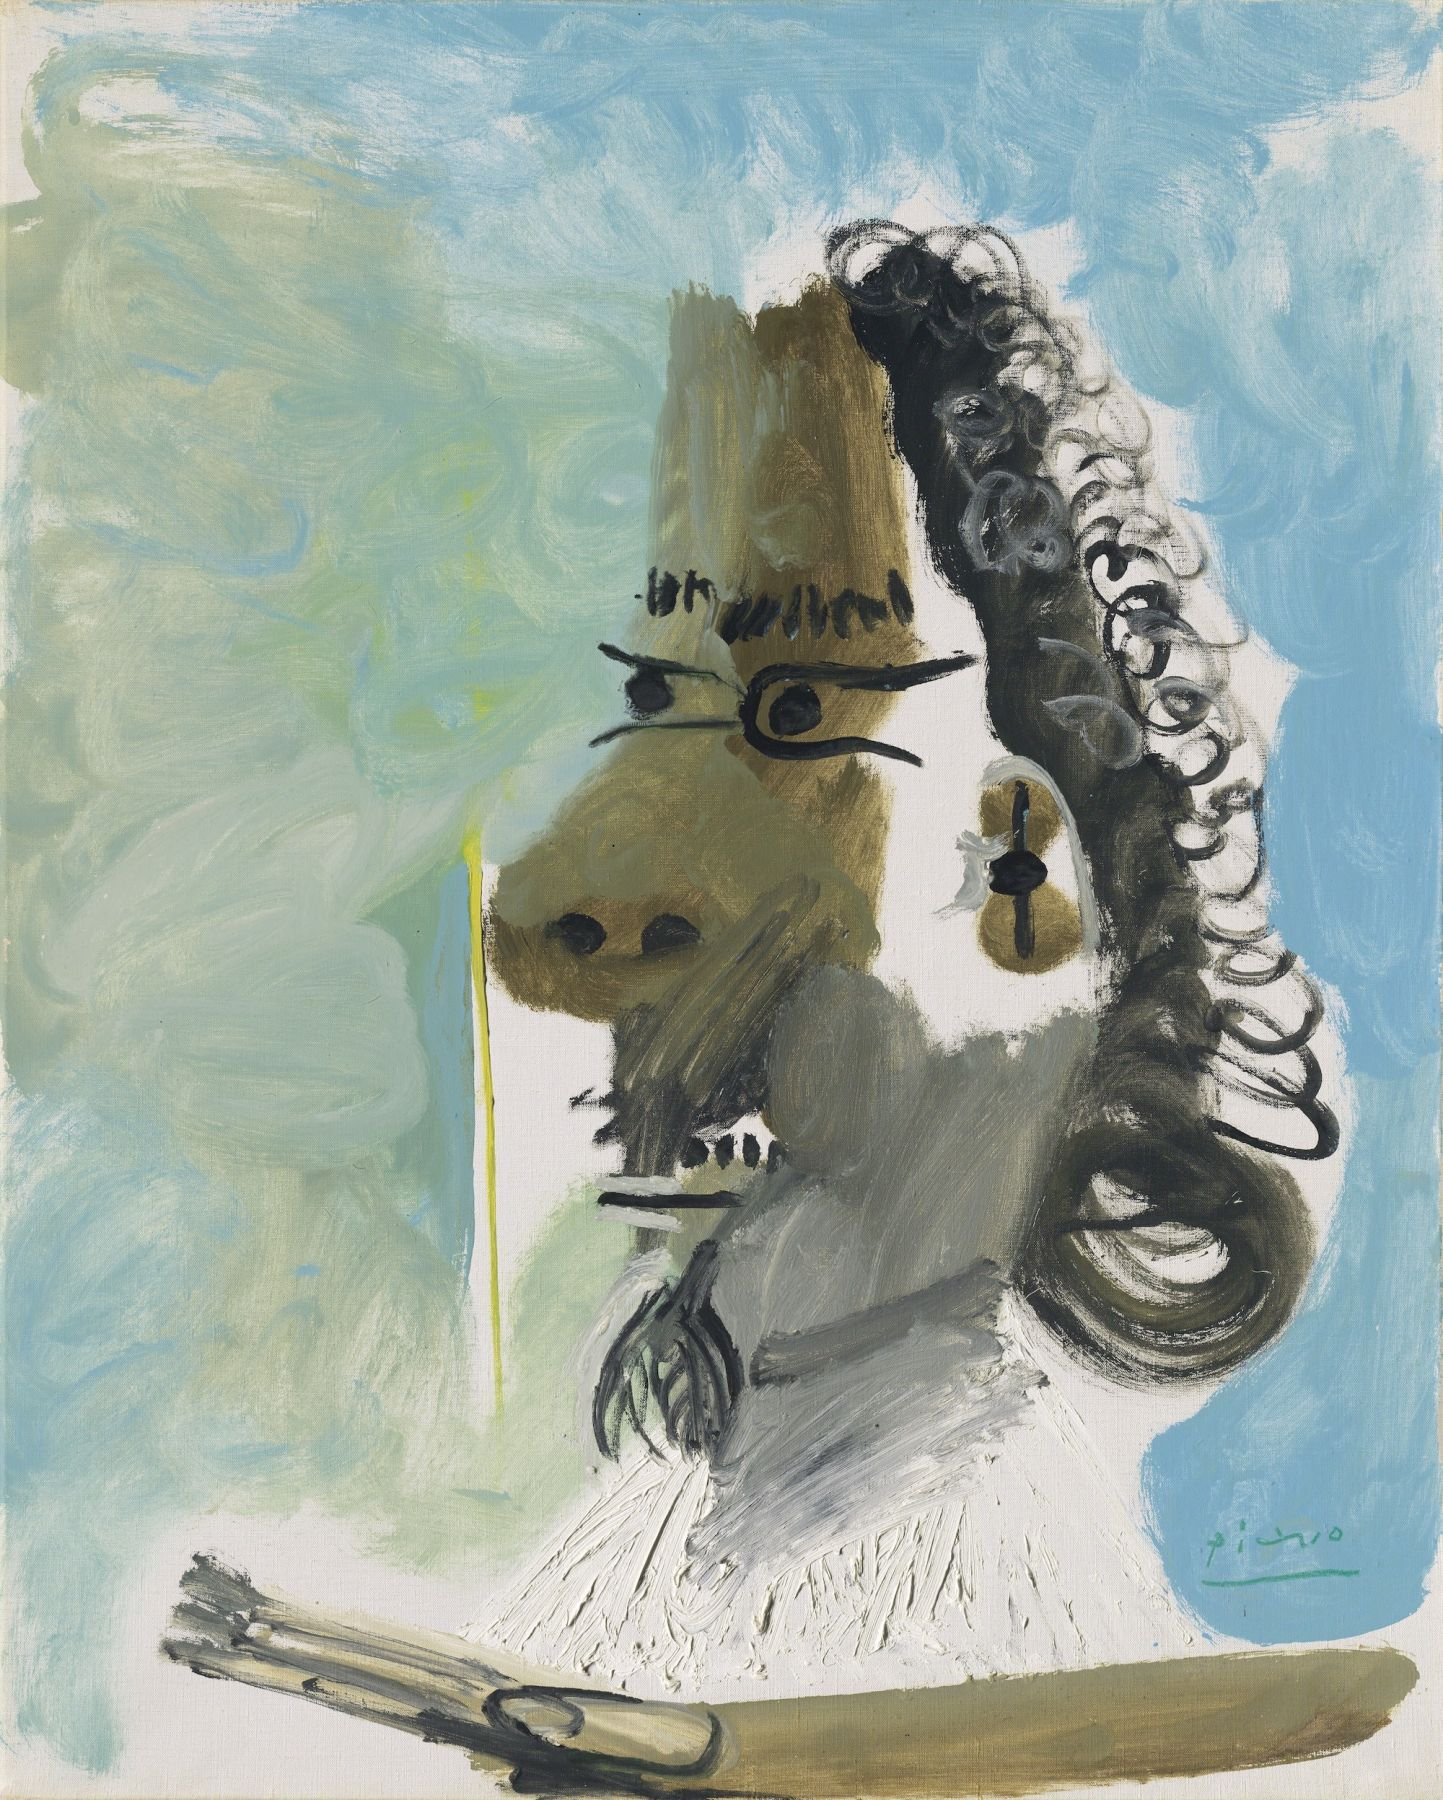 Pablo Picasso, Le Peintre, 1967. Here, Picasso has combined the two leading protagonists of this period: the musketeer and the artist. The profile of a curly haired, moustachioed man with an ornate white ruffled collar dominates the large canvas. He is holding a palette and brush in his hand, leading the viewer to assume that he is standing in front of an unseen easel, engaged in the act of painting.